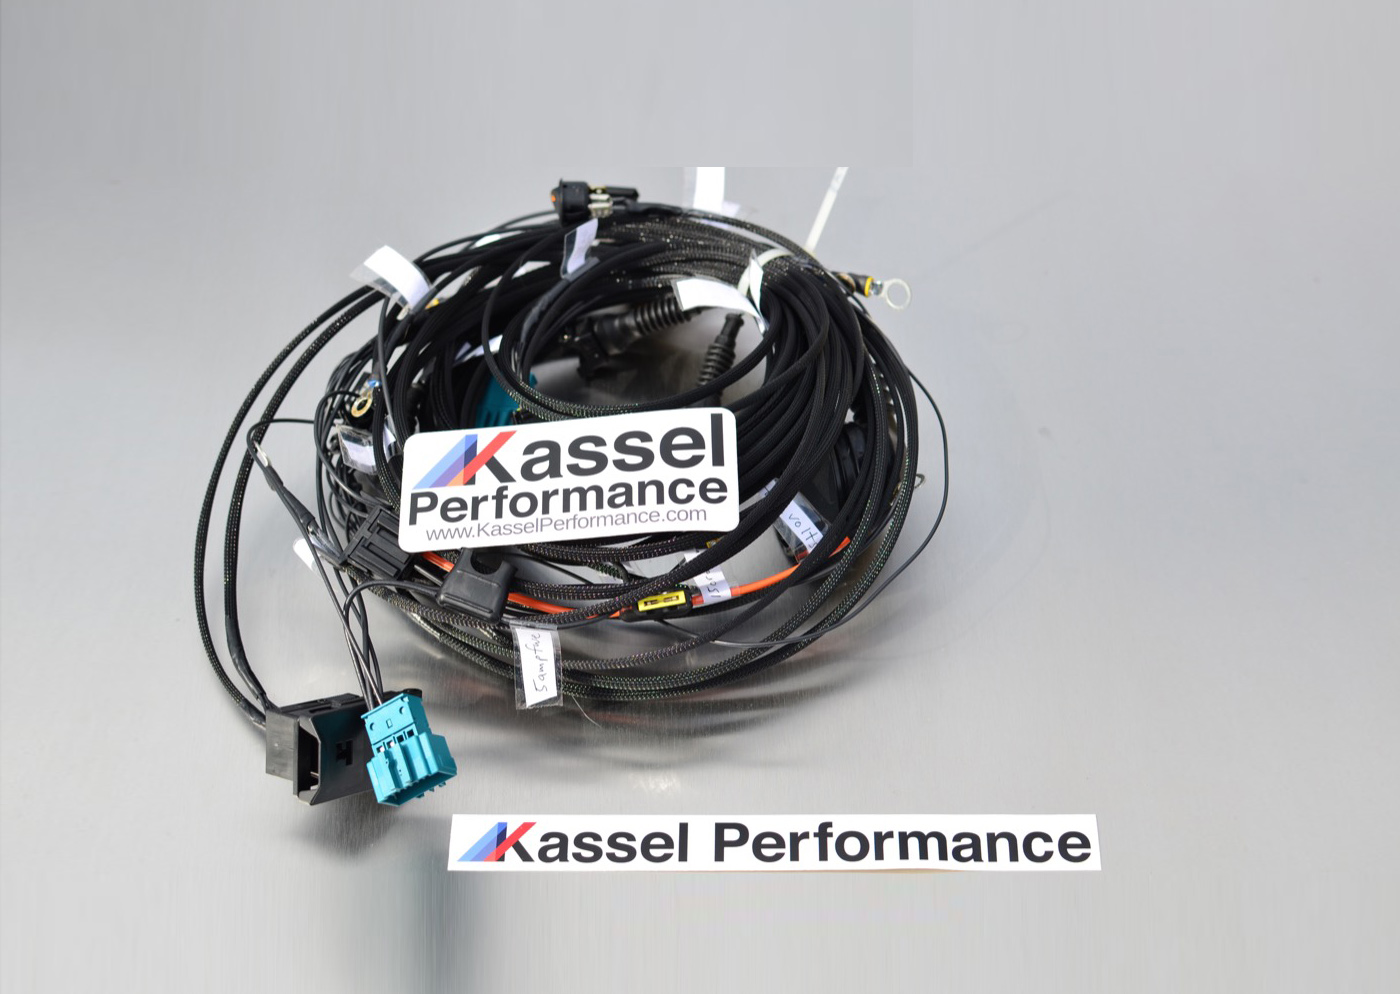 hight resolution of bmw e36 plug and play engine swap wiring harness e46 m3 s54 kassel